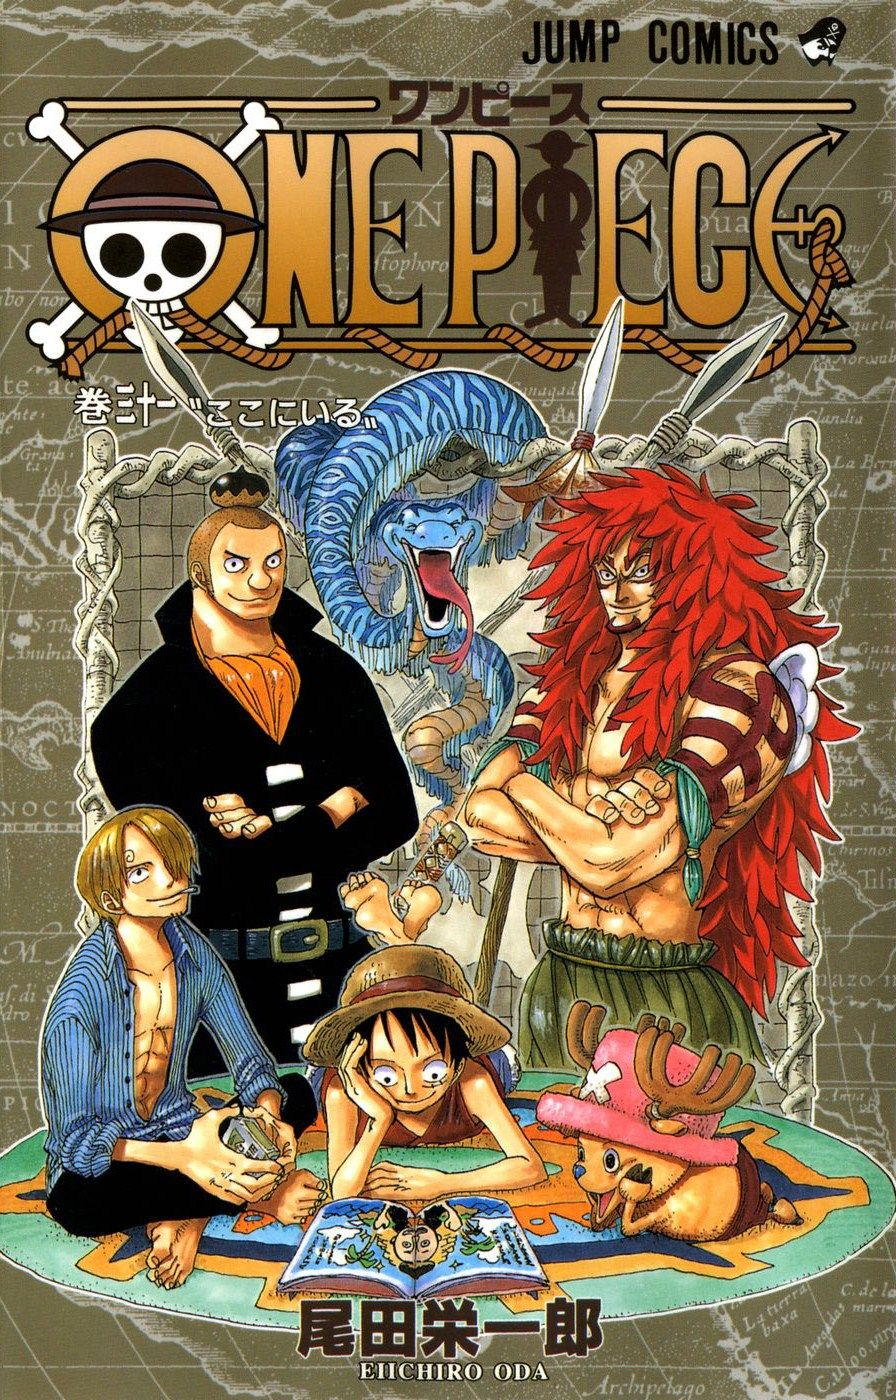 Volume Covers One Piece Comic One Piece Manga Black And White One Piece